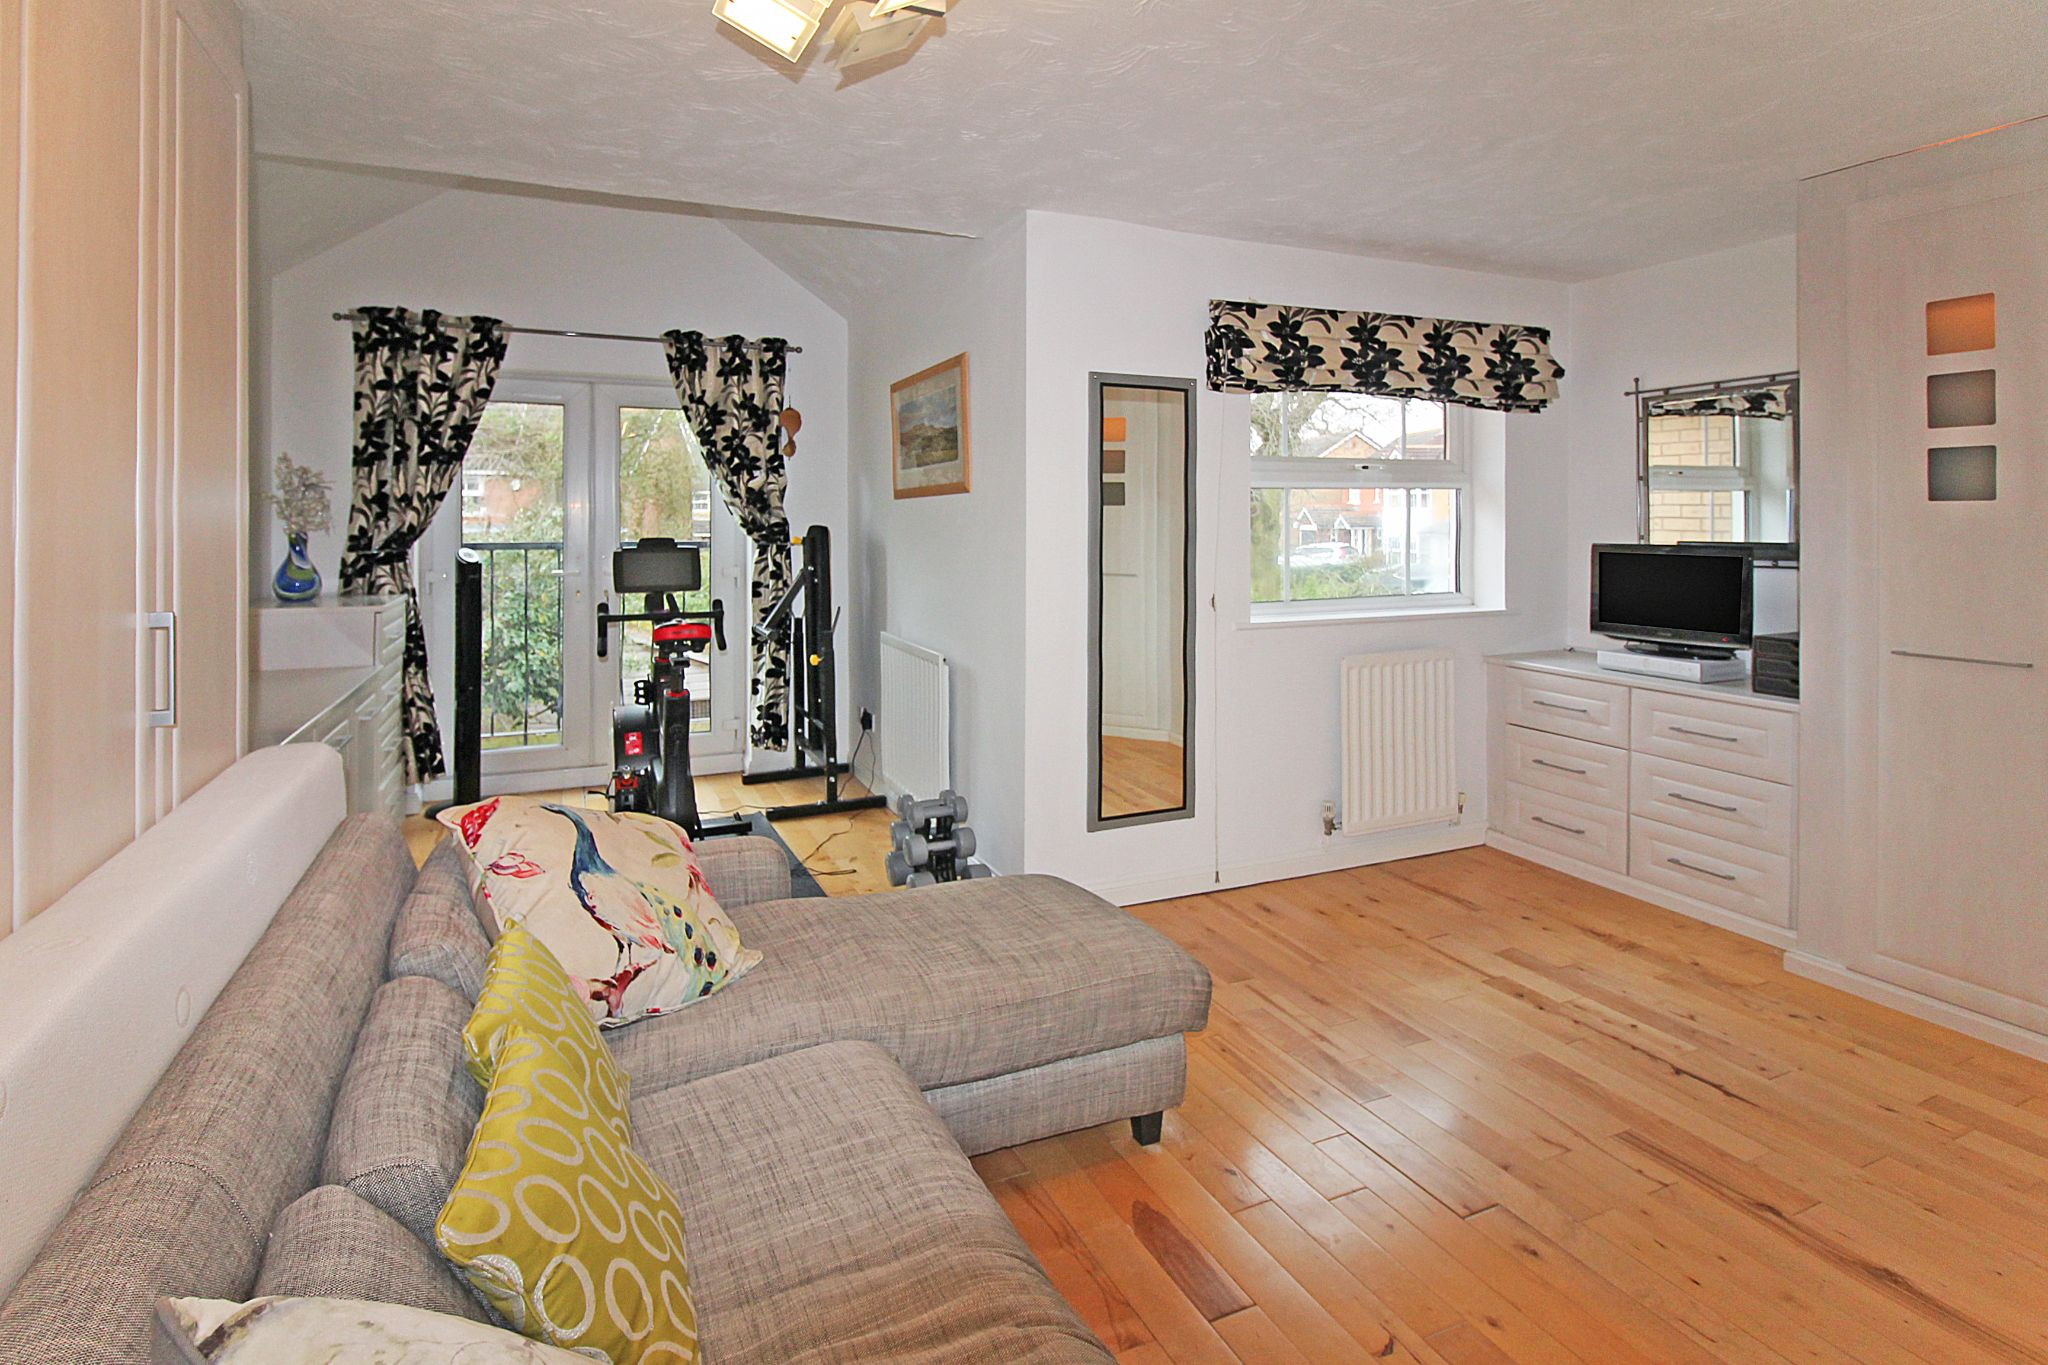 5 bedroom detached house SSTC in Solihull - Photograph 12.